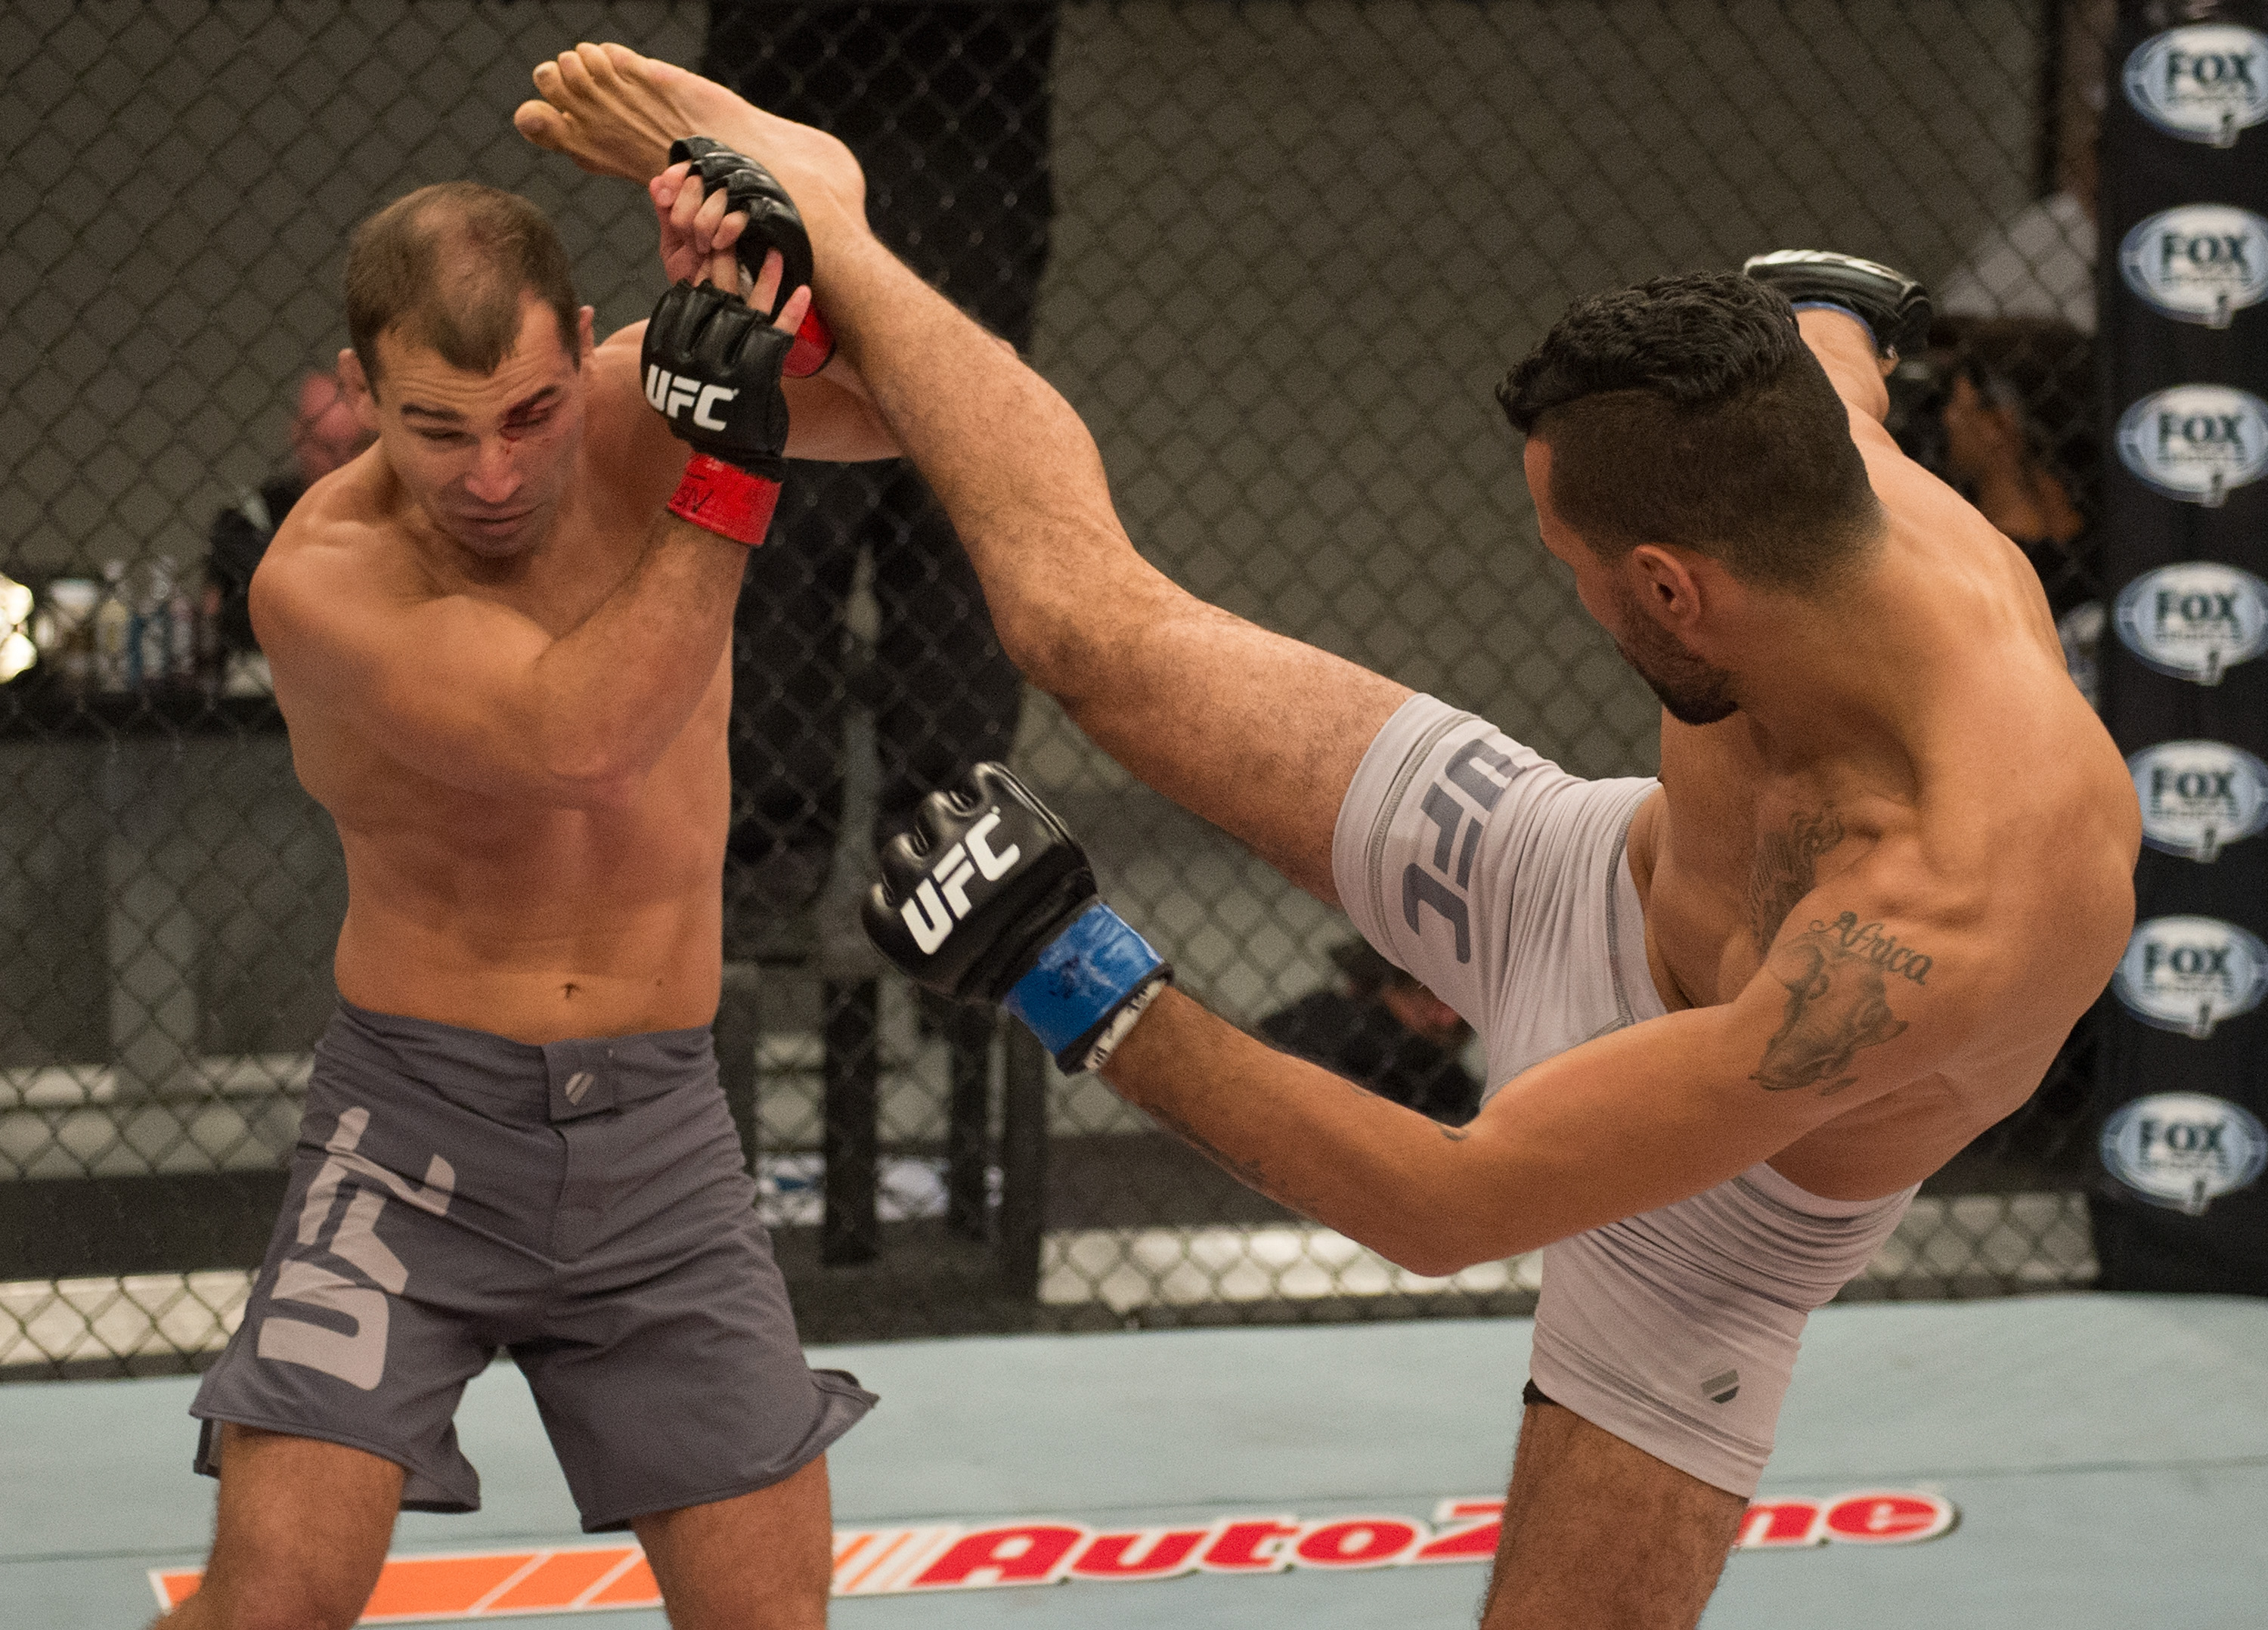 (R-L) Mehdi Baghdad kicks Artem Lobov during the elimination fights at the UFC TUF Gym on July 17, 2015 in Las Vegas, Nevada. (Photo by Brandon Magnus/Zuffa LLC)